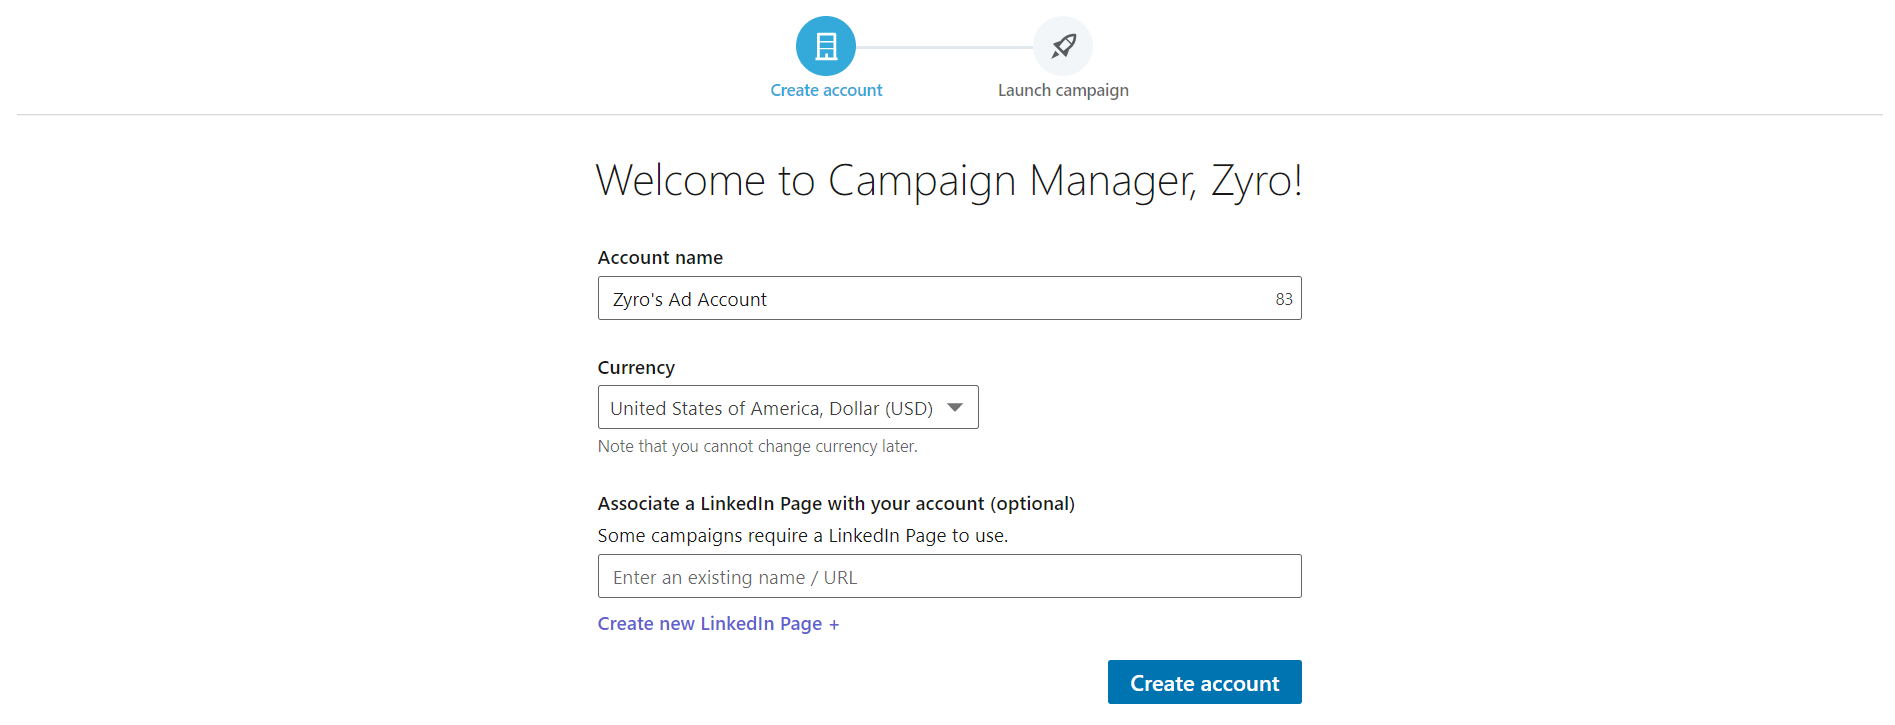 LinkedIn Campaign Manager's welcome page